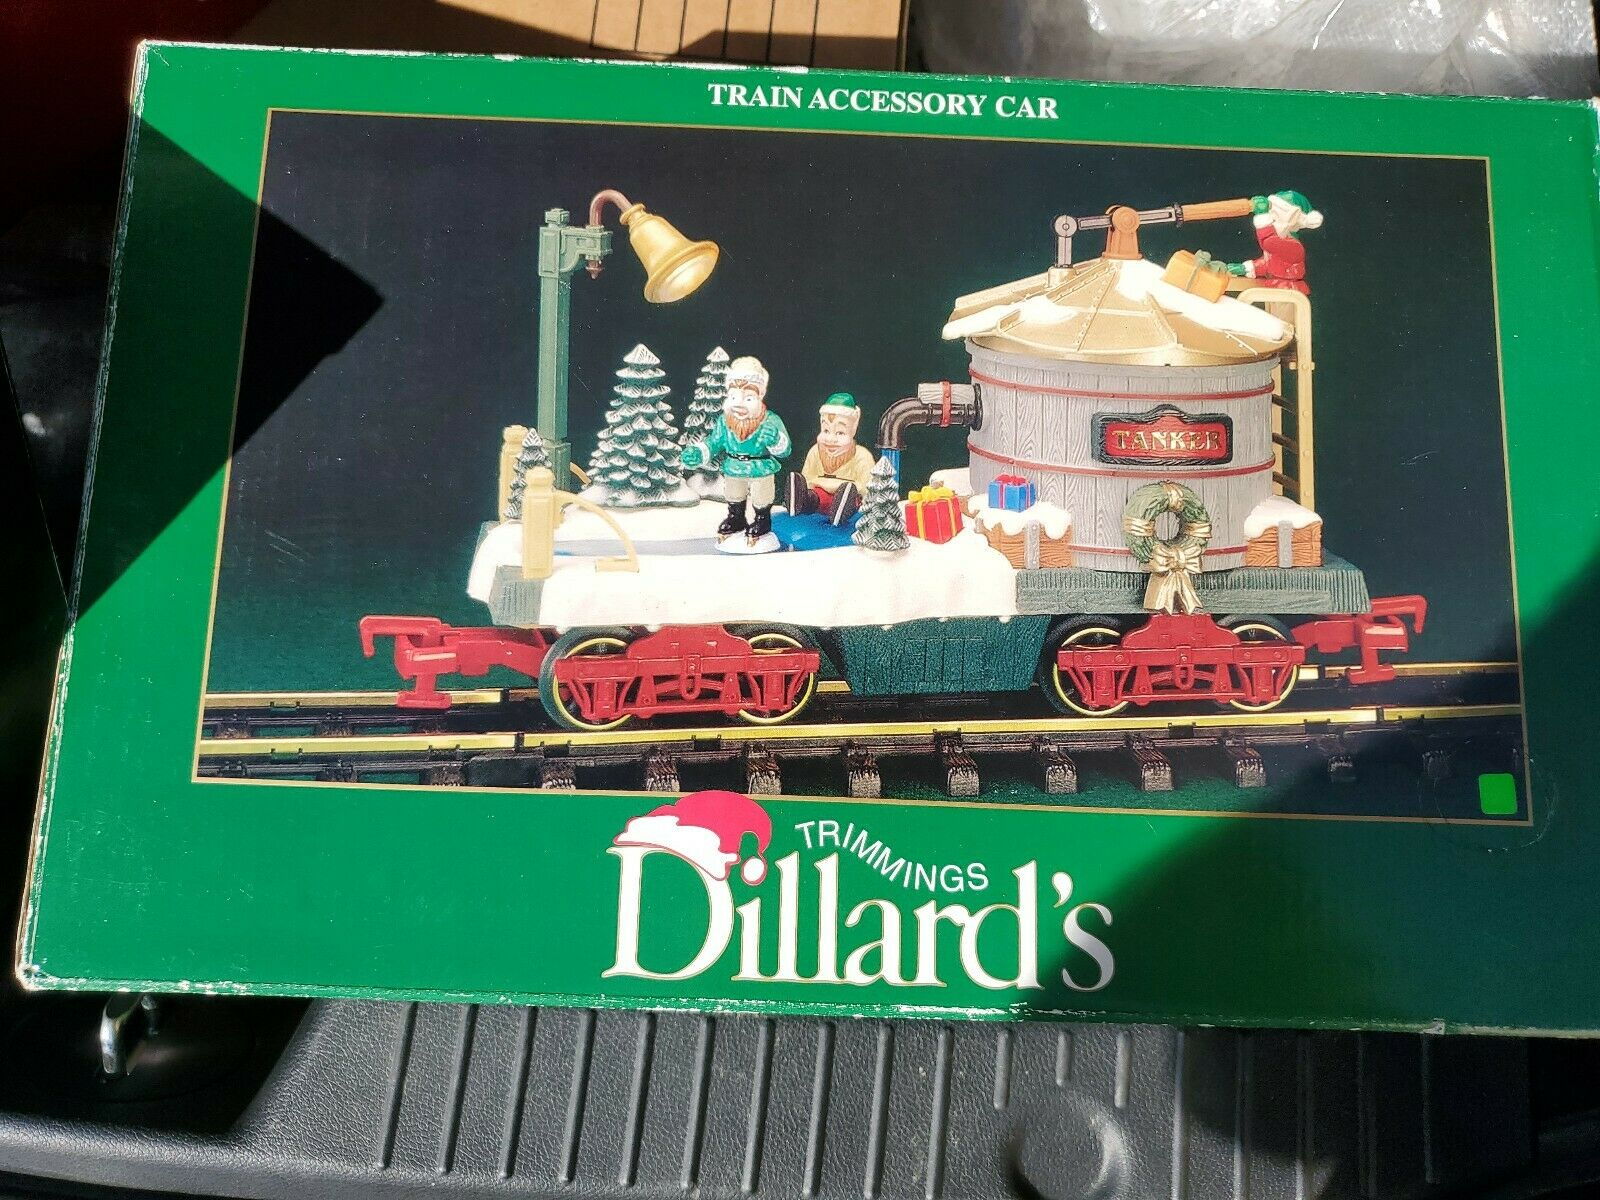 "Dellard ; trimmings {};s Trimmings {1 55333};Tanker ;  5533; ""Trainer Accessory Auto 383-2-4 Verlichte G Scale"""